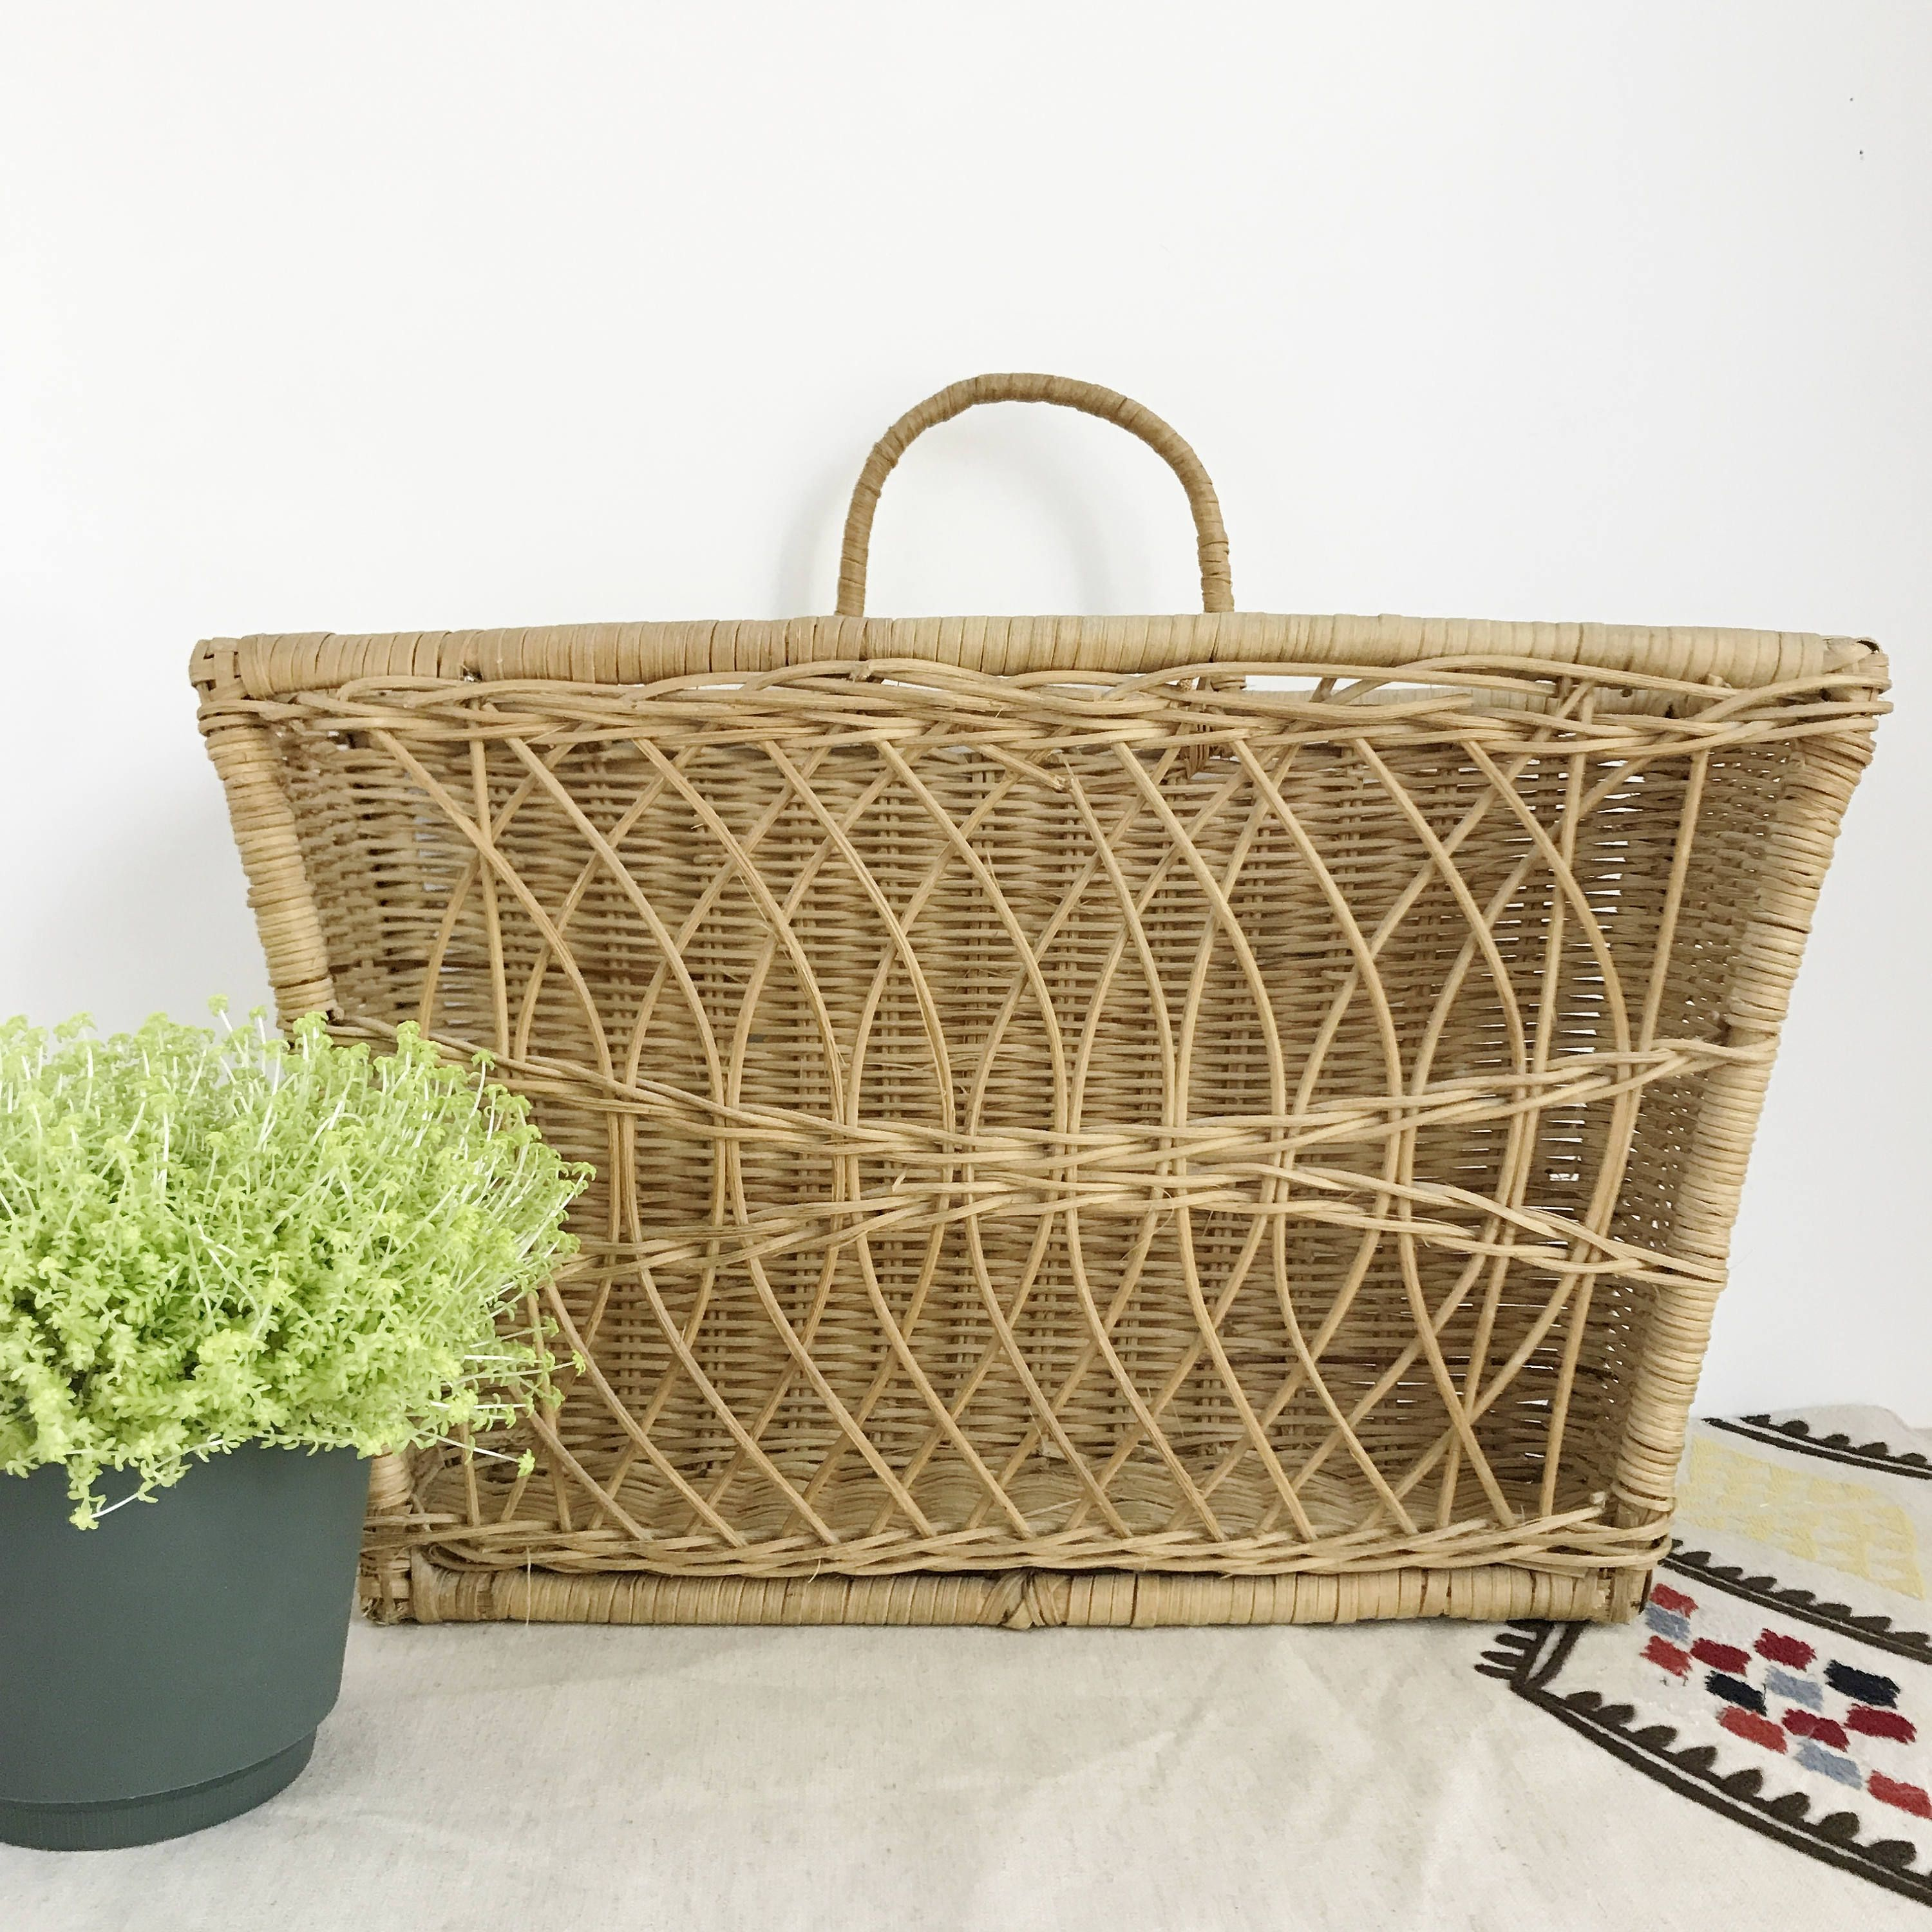 Vintage Woven Wall Hanging Basket With Handle Wall Pocket Magazine Holder Wall Storage Wicker Basket W Handl Woven Wall Hanging Baskets On Wall Hanging Baskets